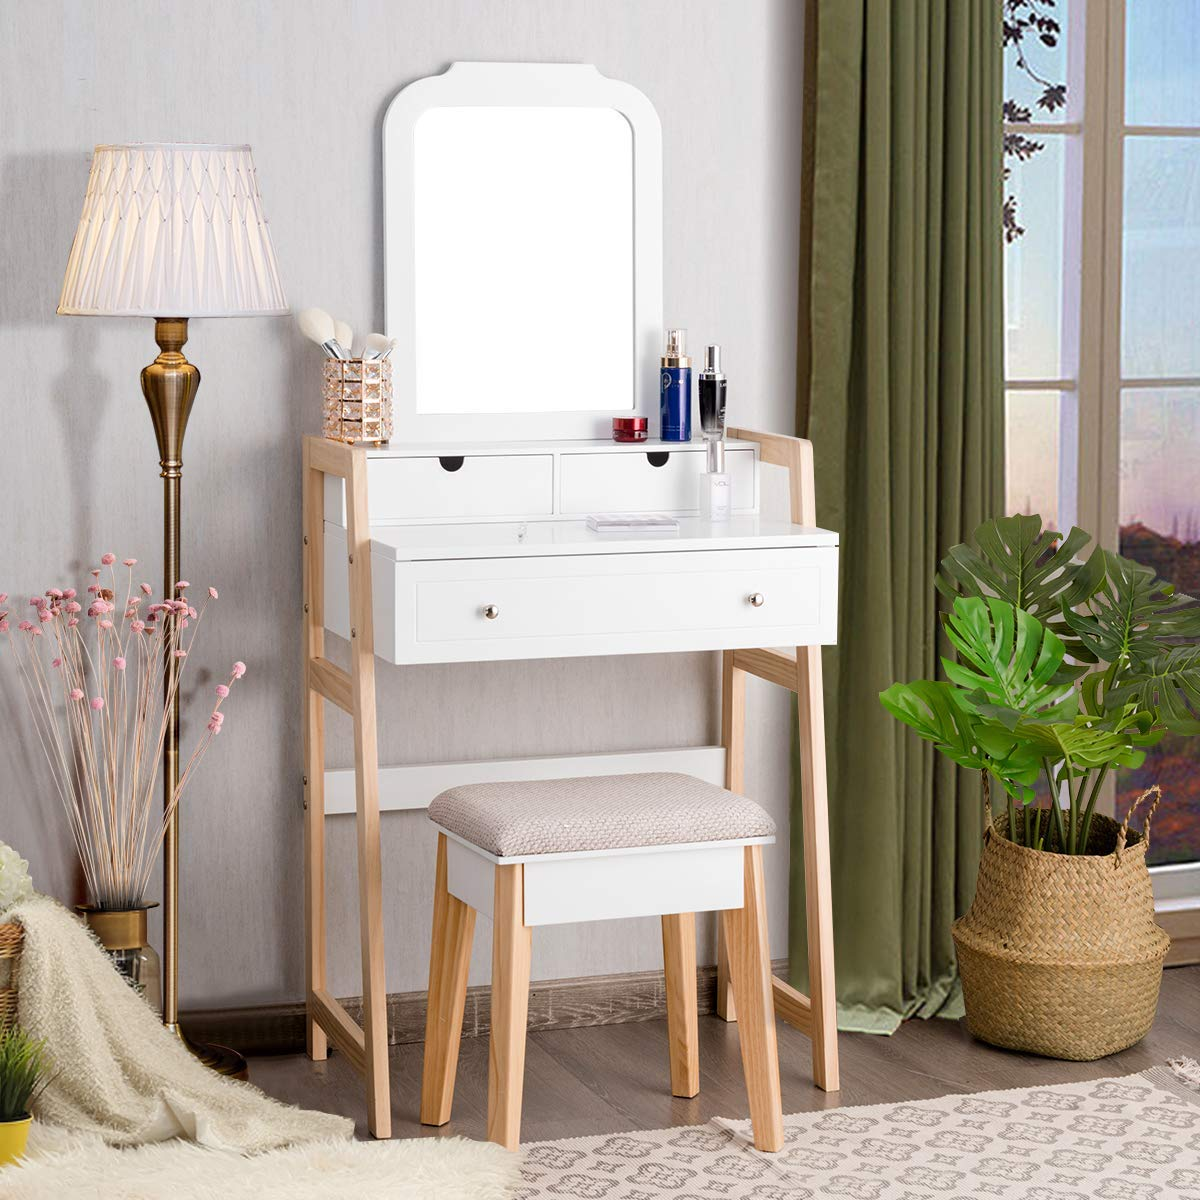 CHARMAID Vanity Set